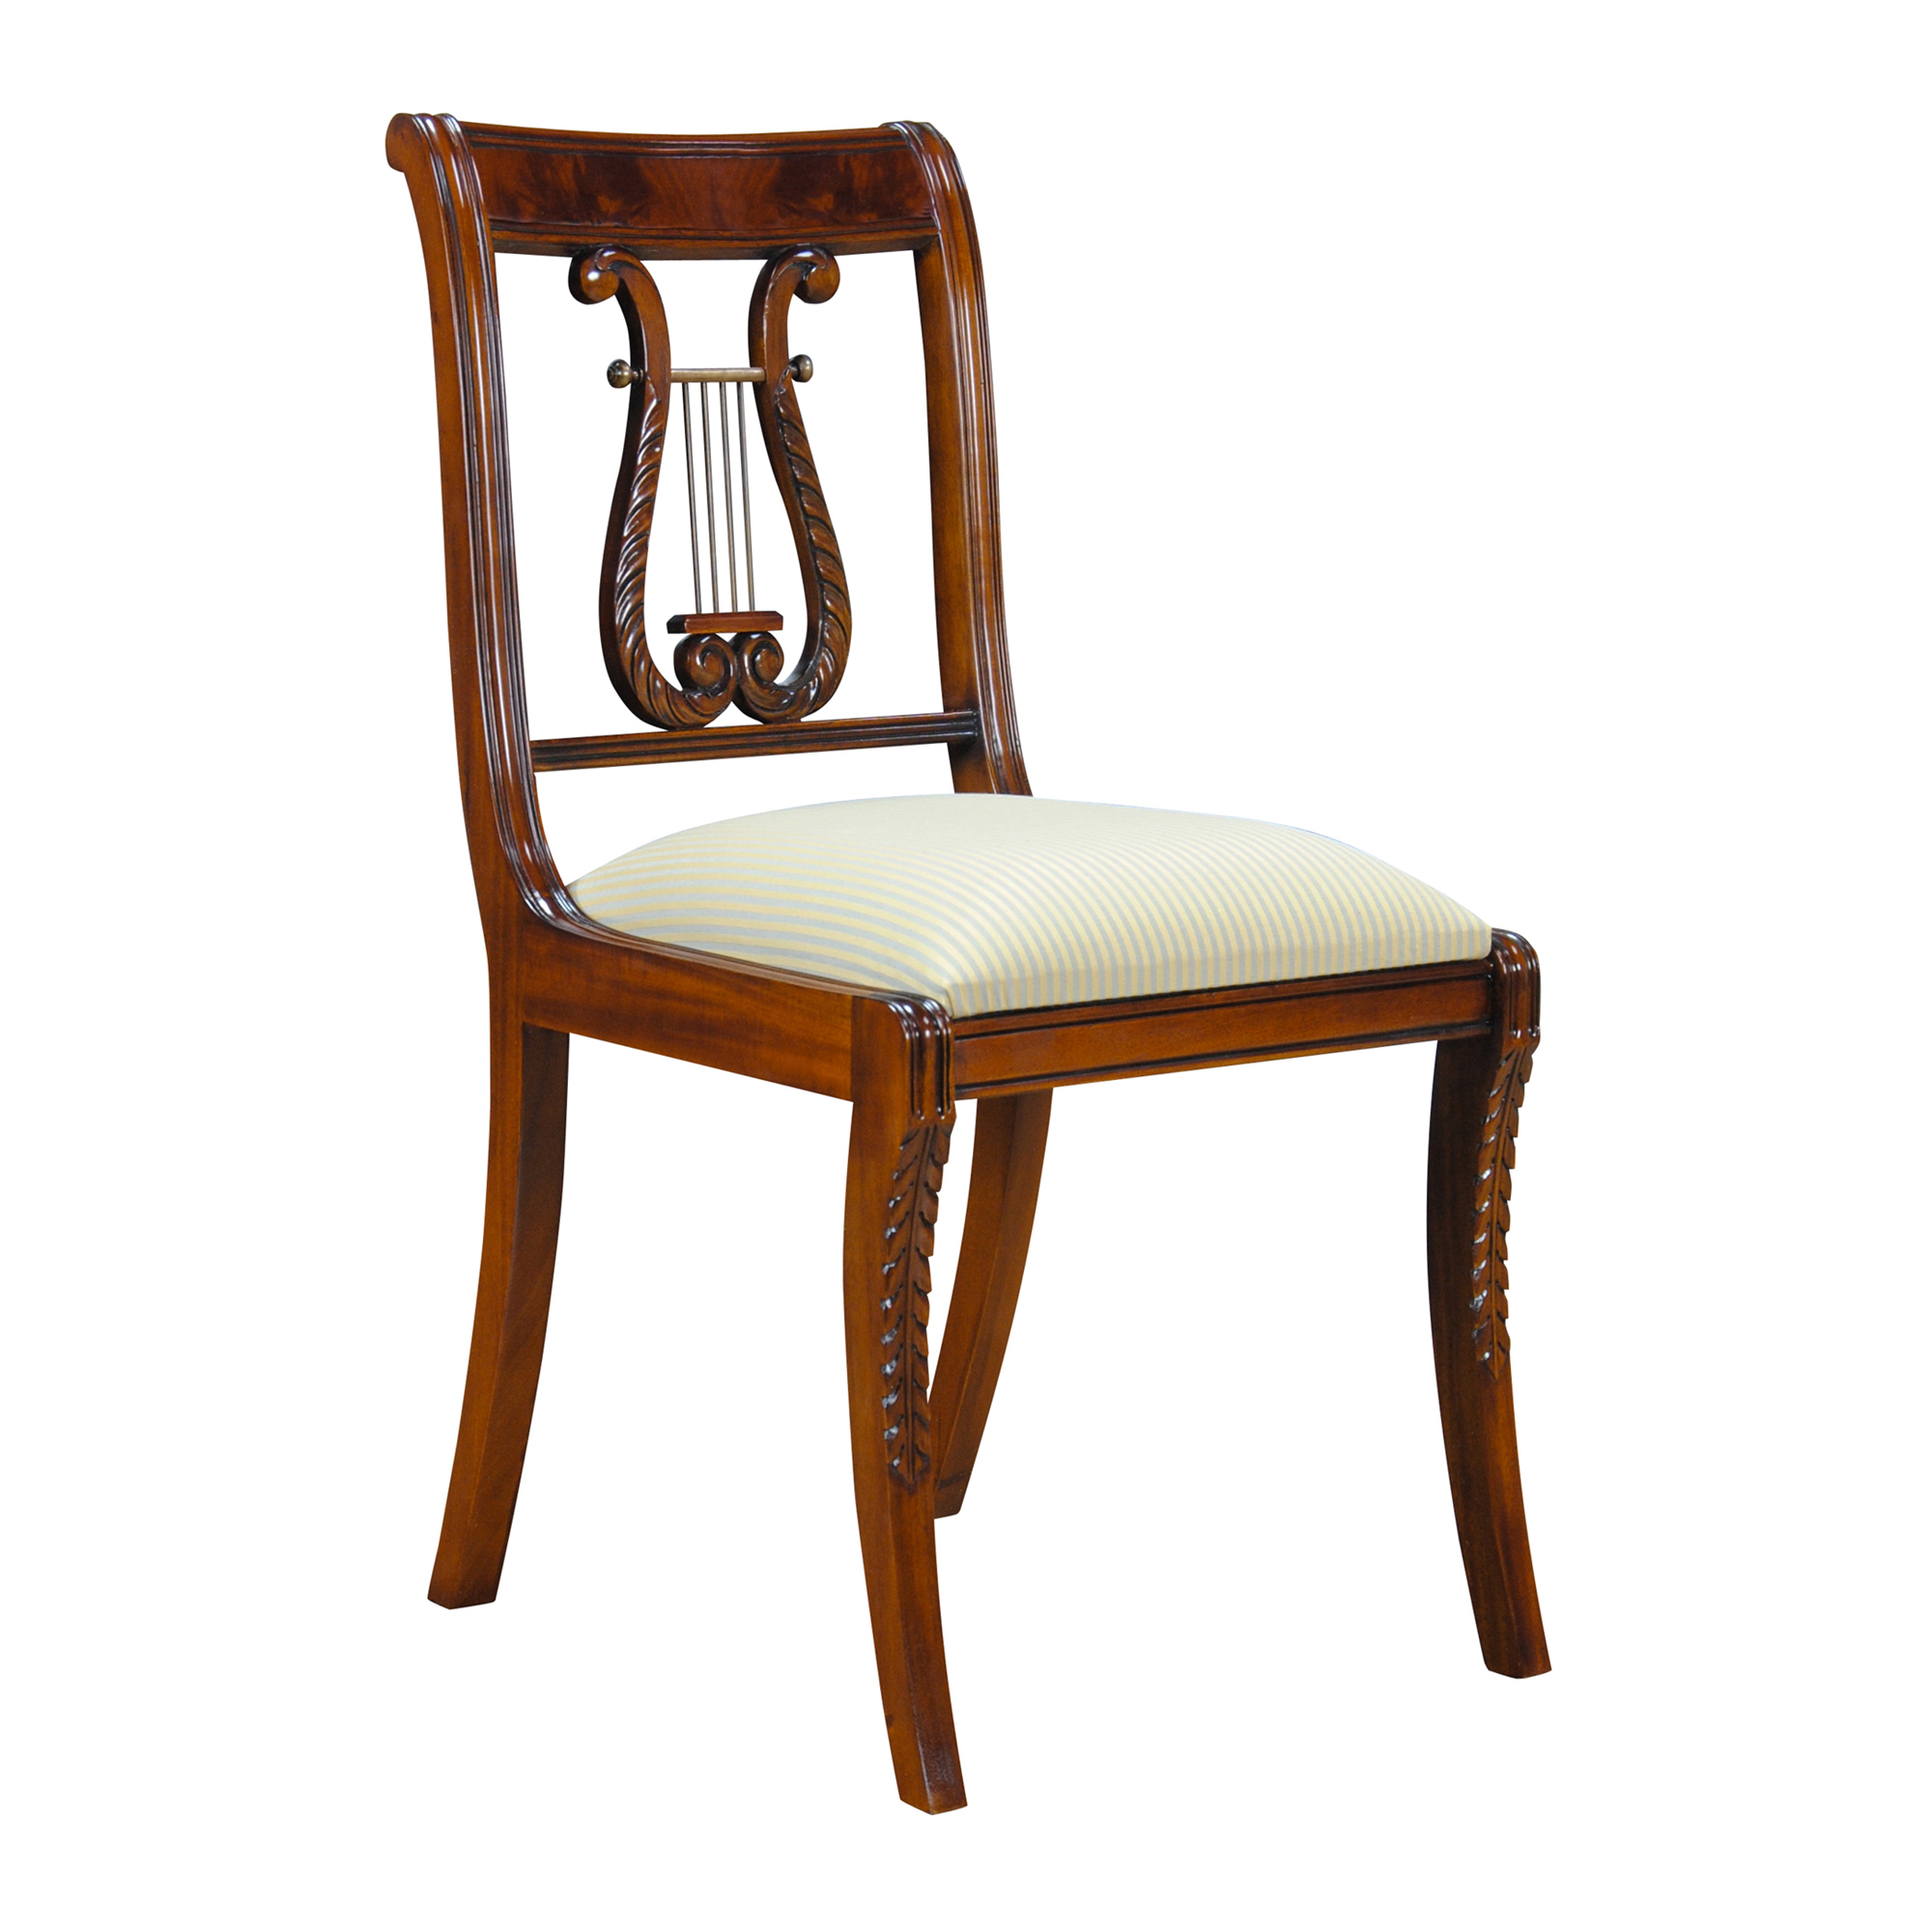 Lyre side chair harp back chair niagara furniture free for Furniture 0ne